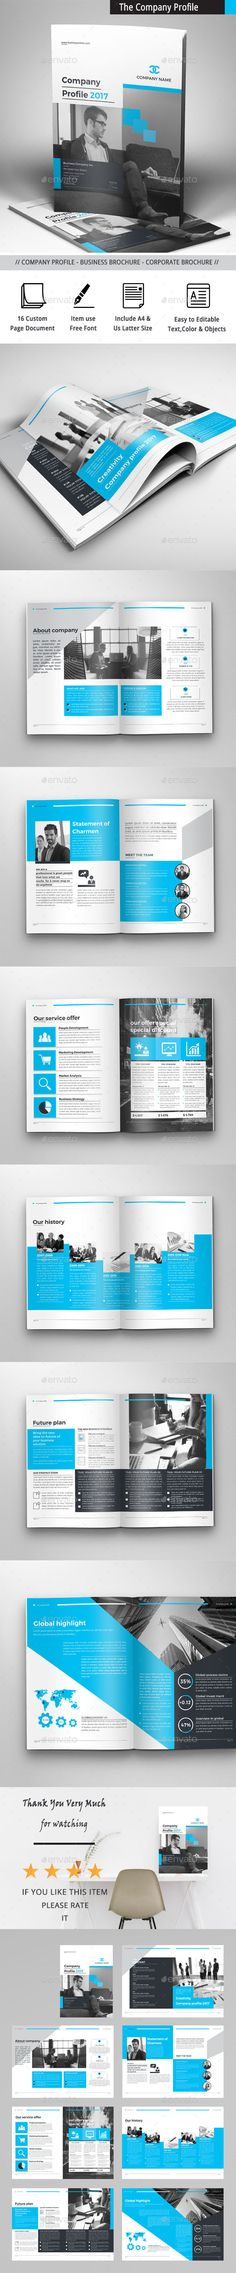 The Company Profile by obayes Brochure Description:The Company Profile Brochure Template that is super simple to edit and customize with your own details!Can b